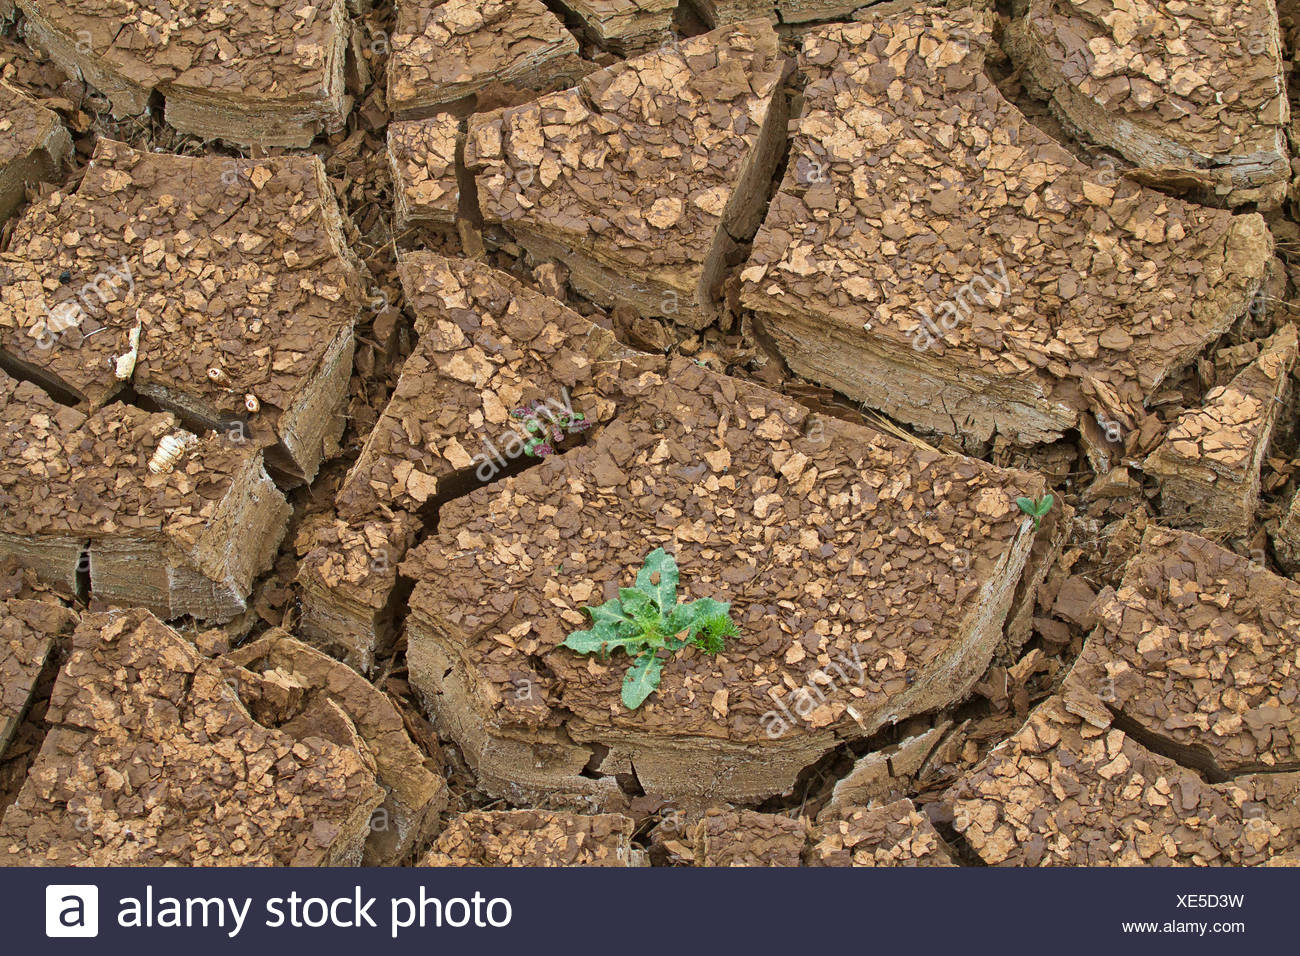 single plant growing on a soil ground flawed of drought, Spain, Andalusia, Parque Natural los Alcornocales - Stock Image